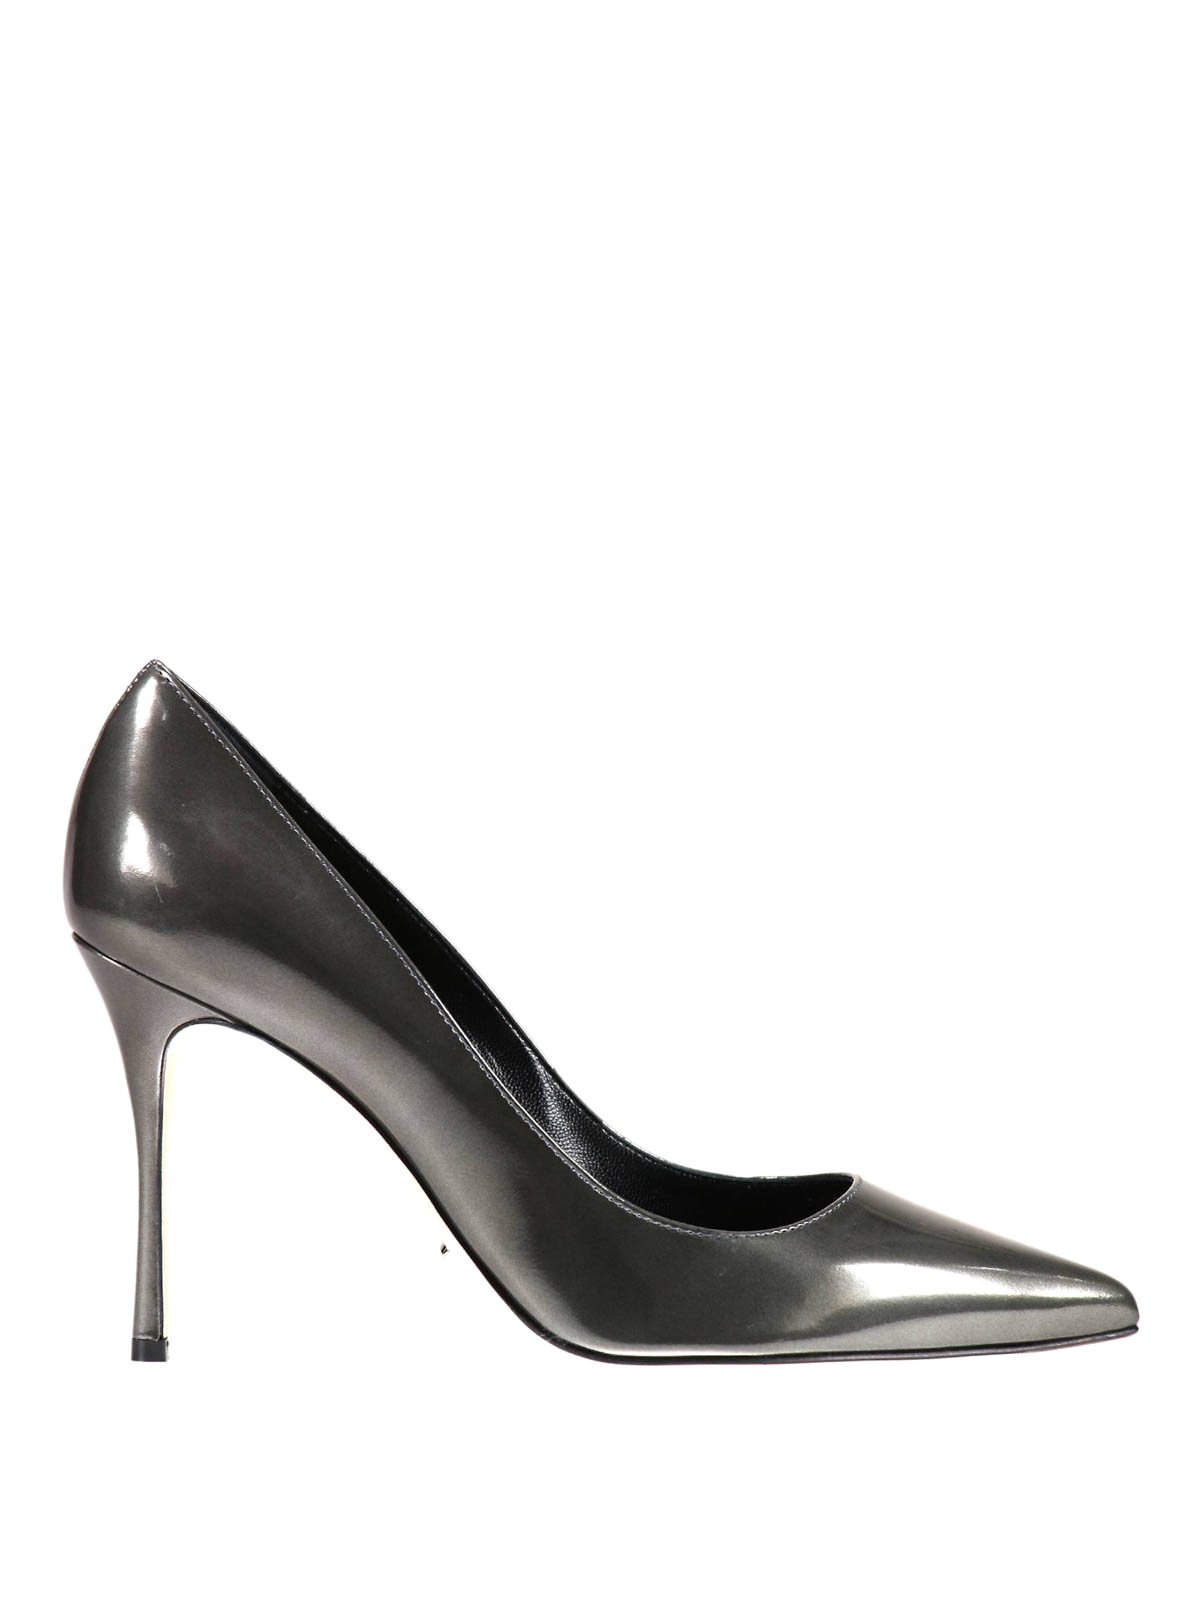 godiva patent leather pumps by sergio rossi court shoes ikrix. Black Bedroom Furniture Sets. Home Design Ideas